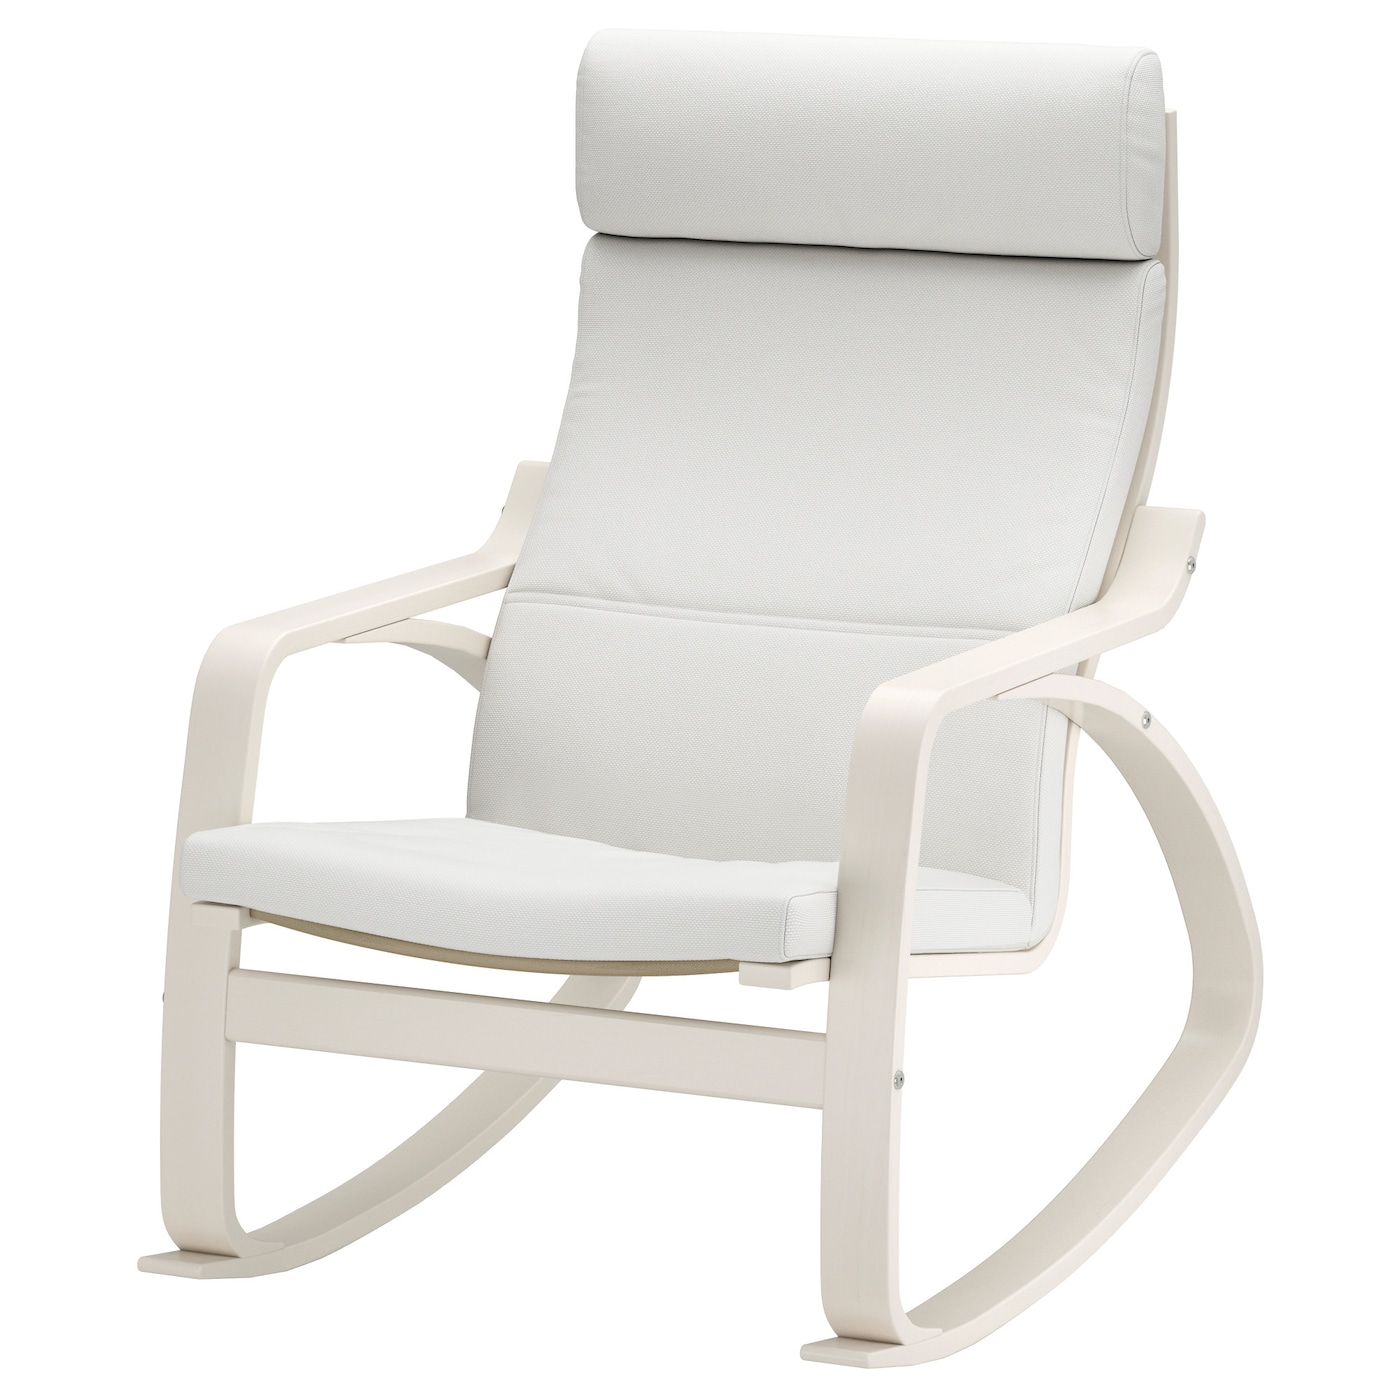 po ng rocking chair white finnsta white ikea. Black Bedroom Furniture Sets. Home Design Ideas